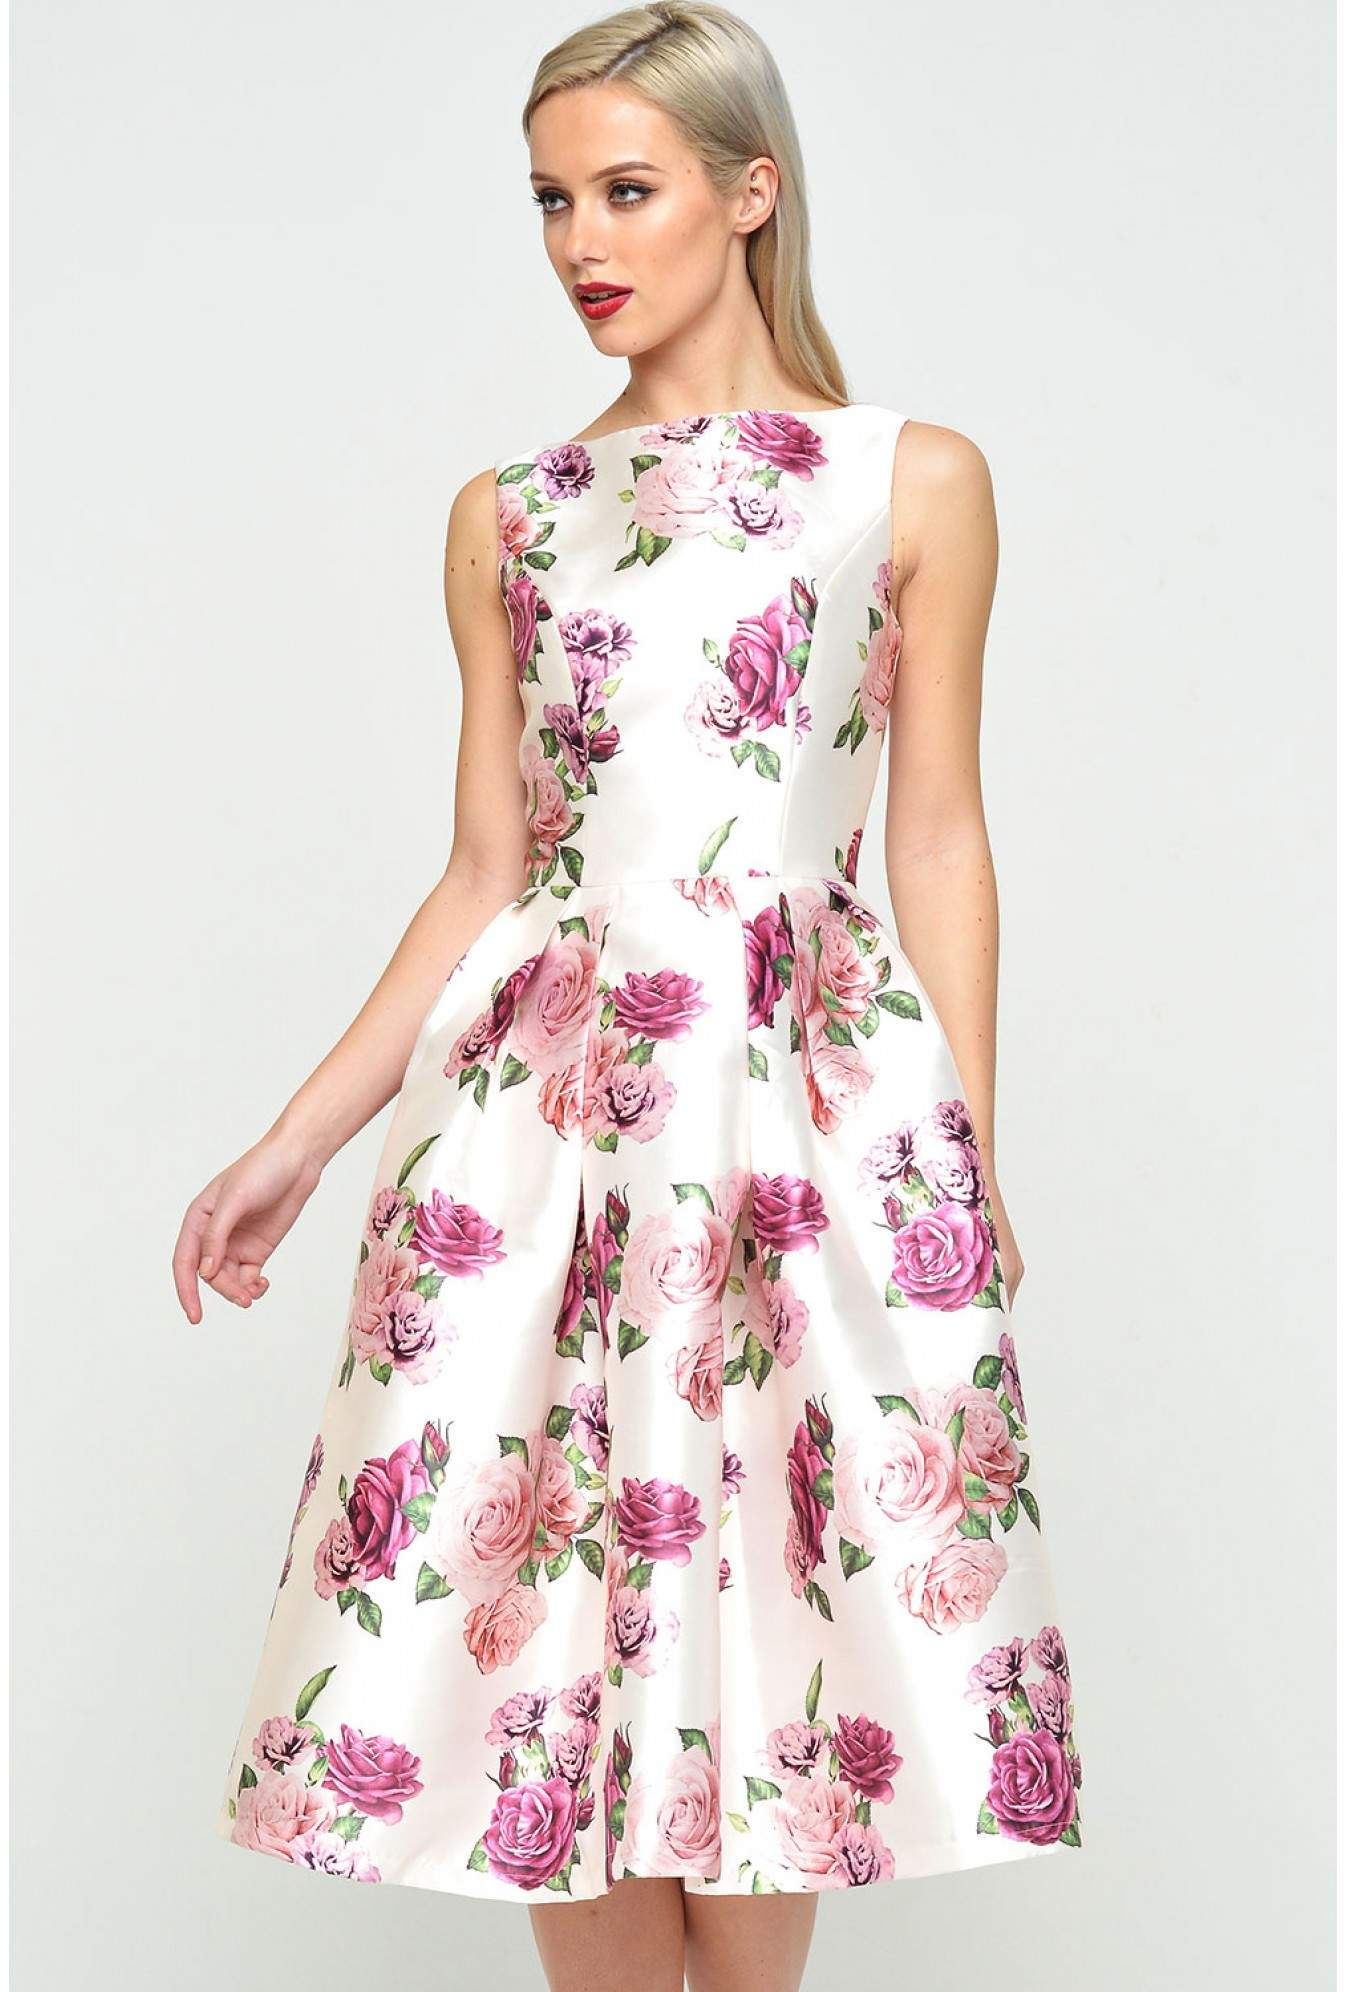 More Views. Izi Satin Floral Skater Dress b23676274